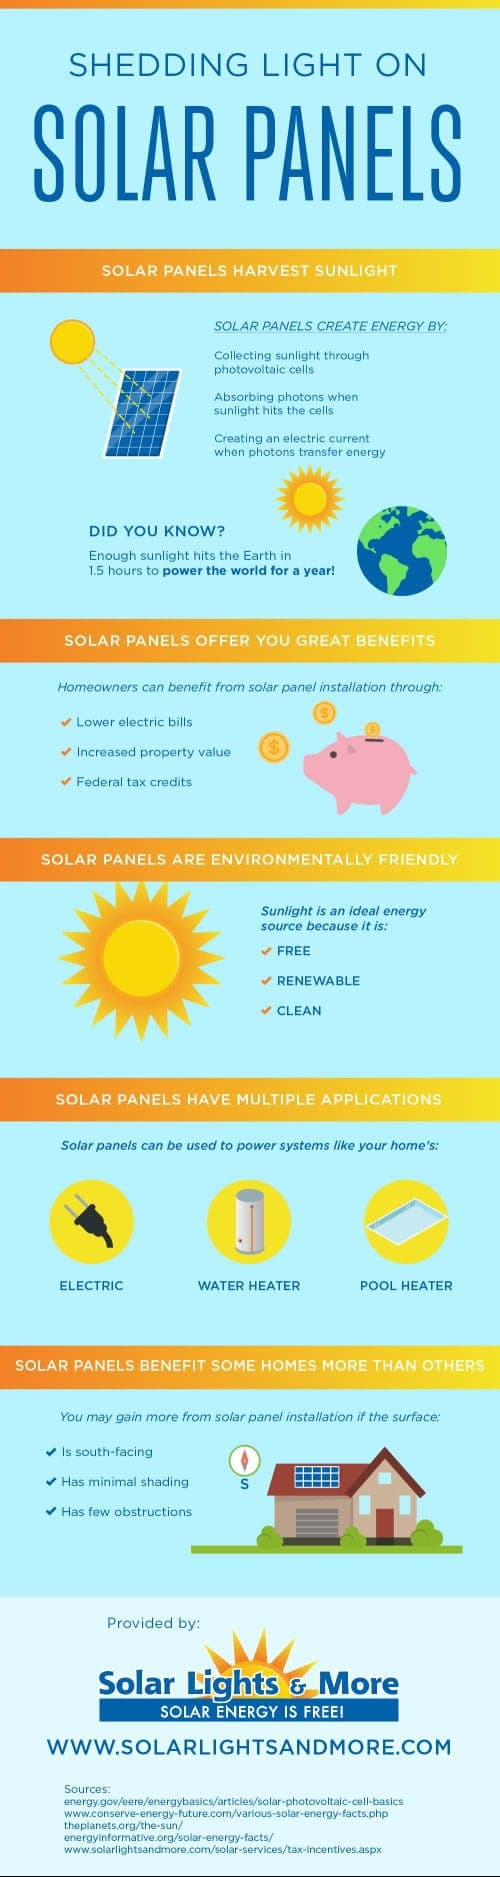 Shedding Light on Solar Panels